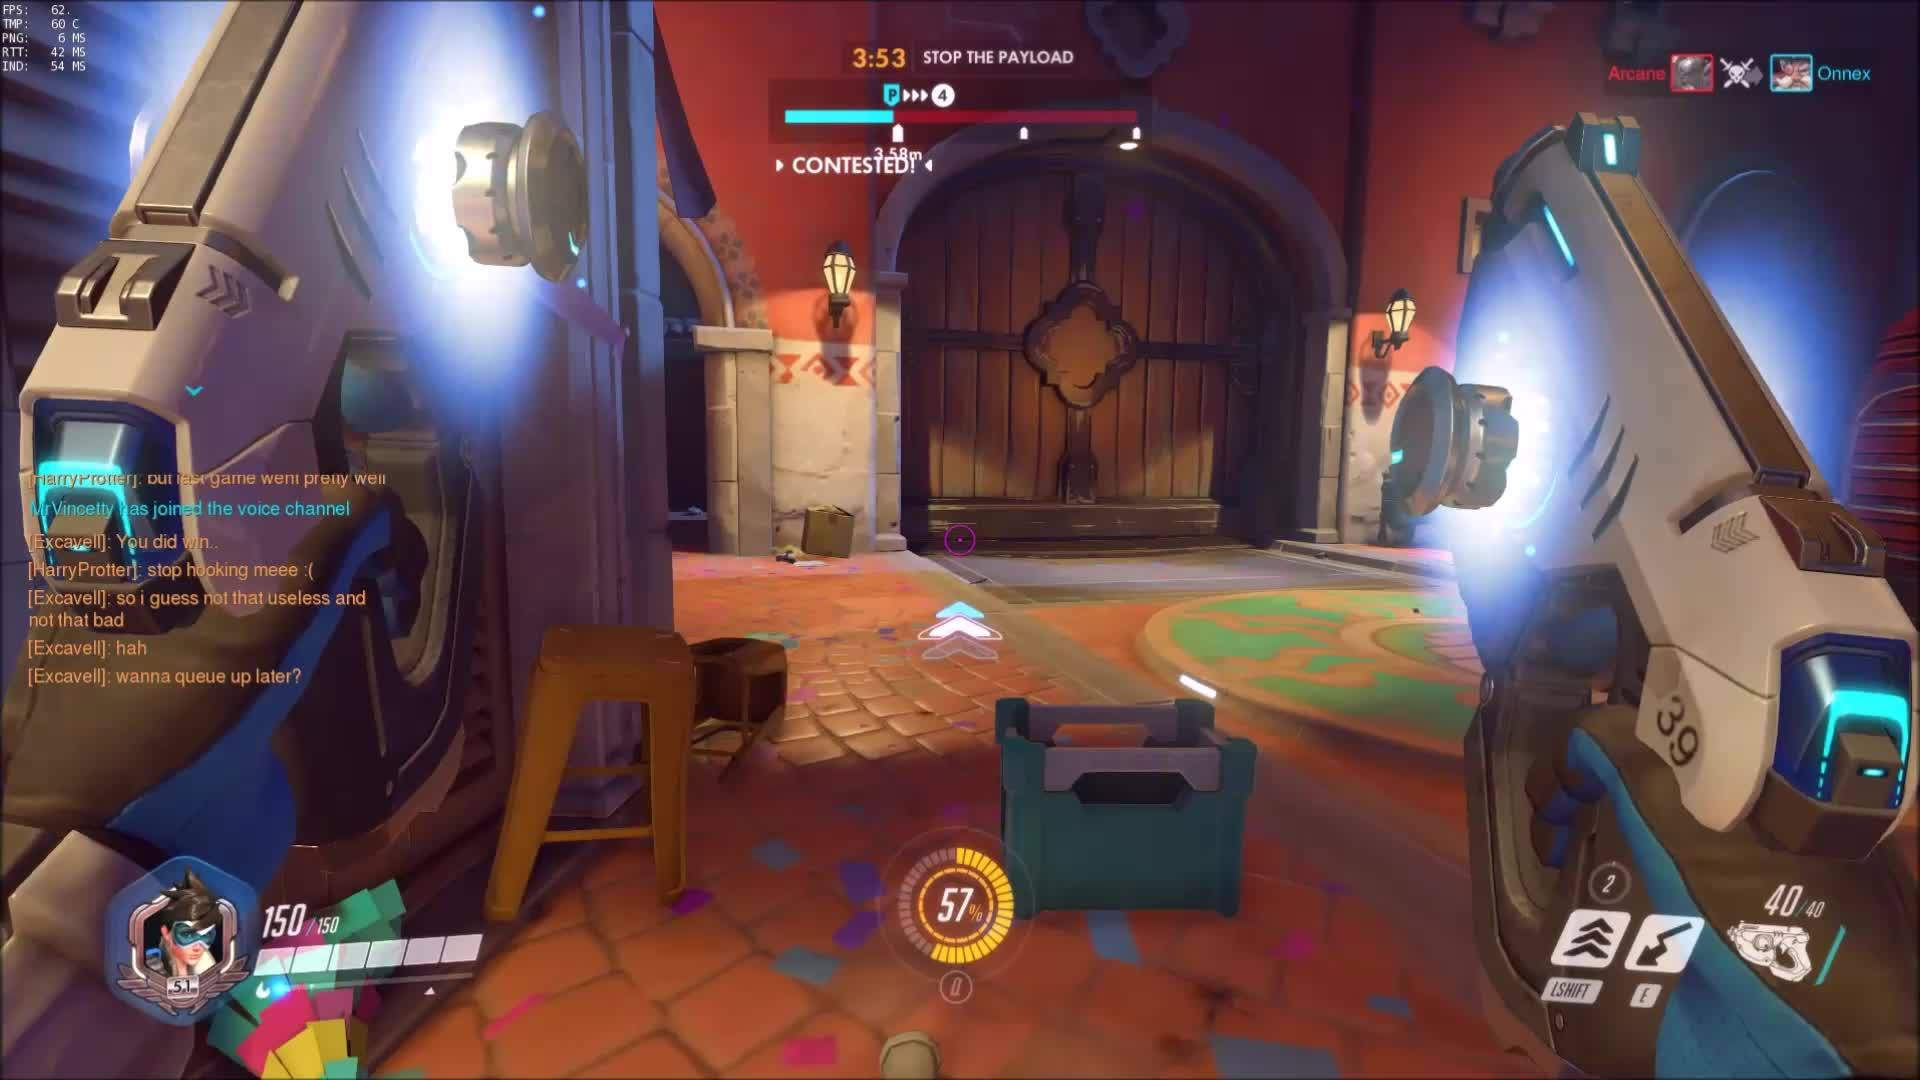 overwatch, worldnews, Just aim at Roadhog's belly and you will get a headshot (reddit) GIFs